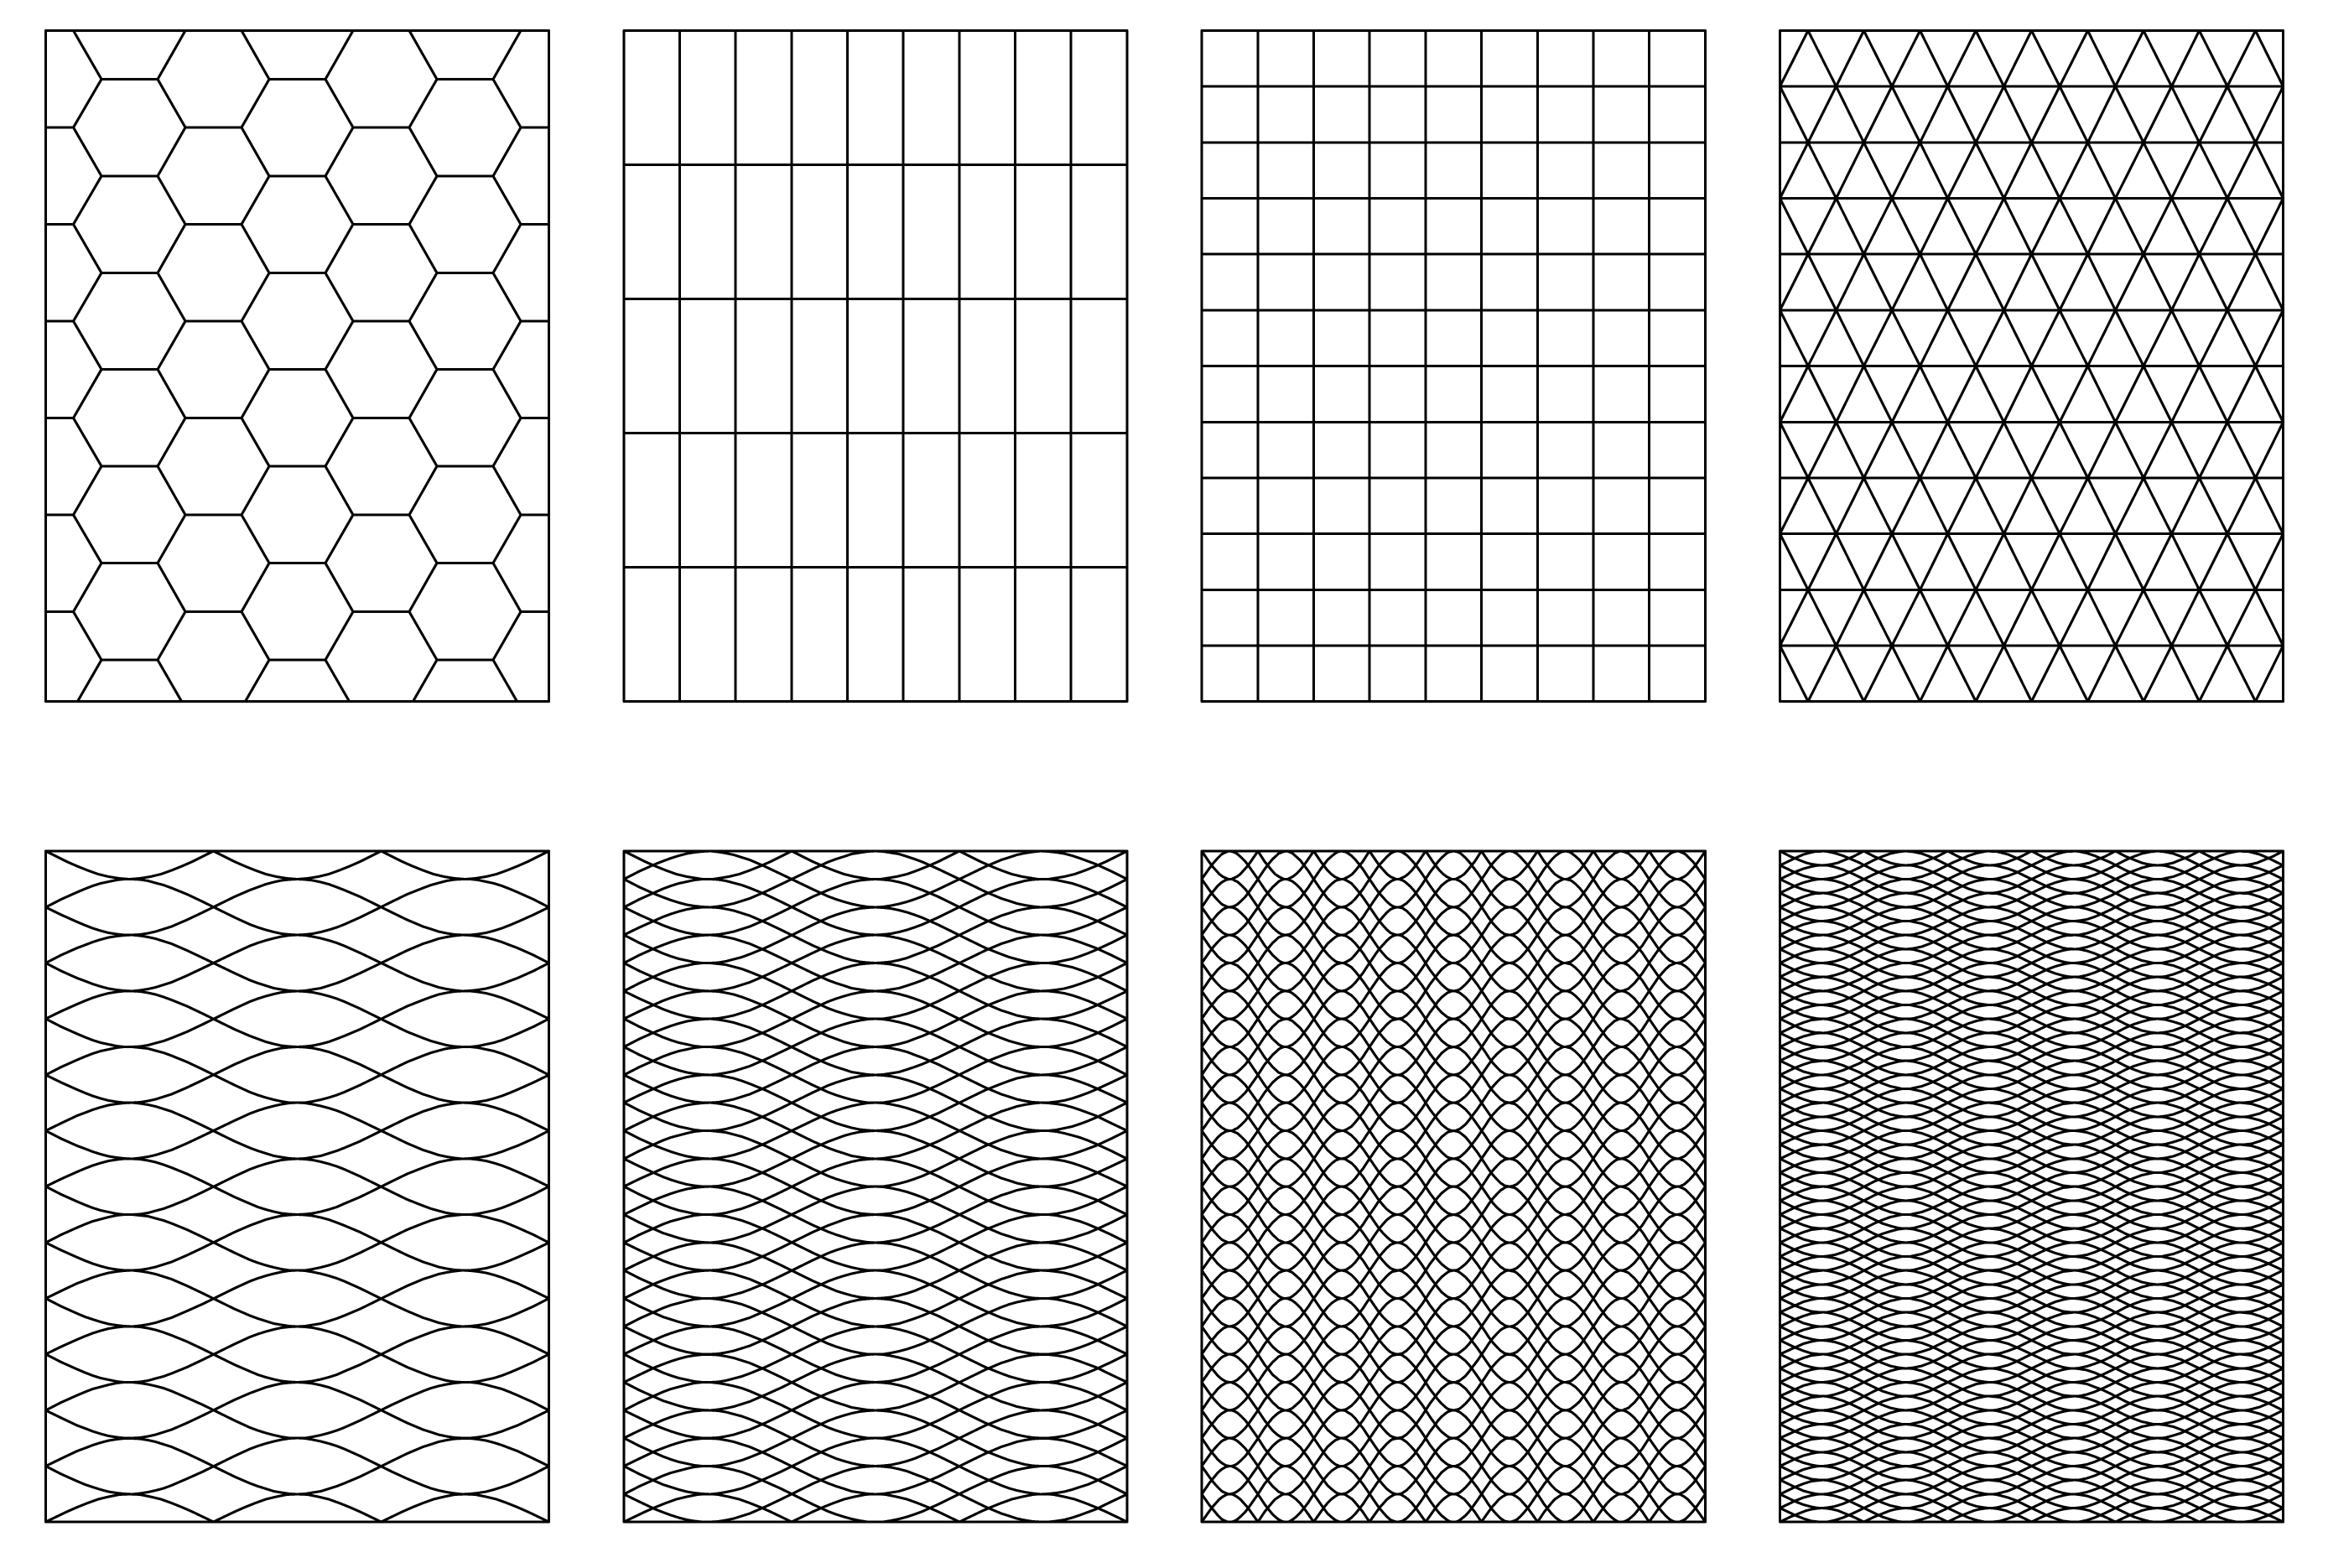 tesselation patterns modeljpg